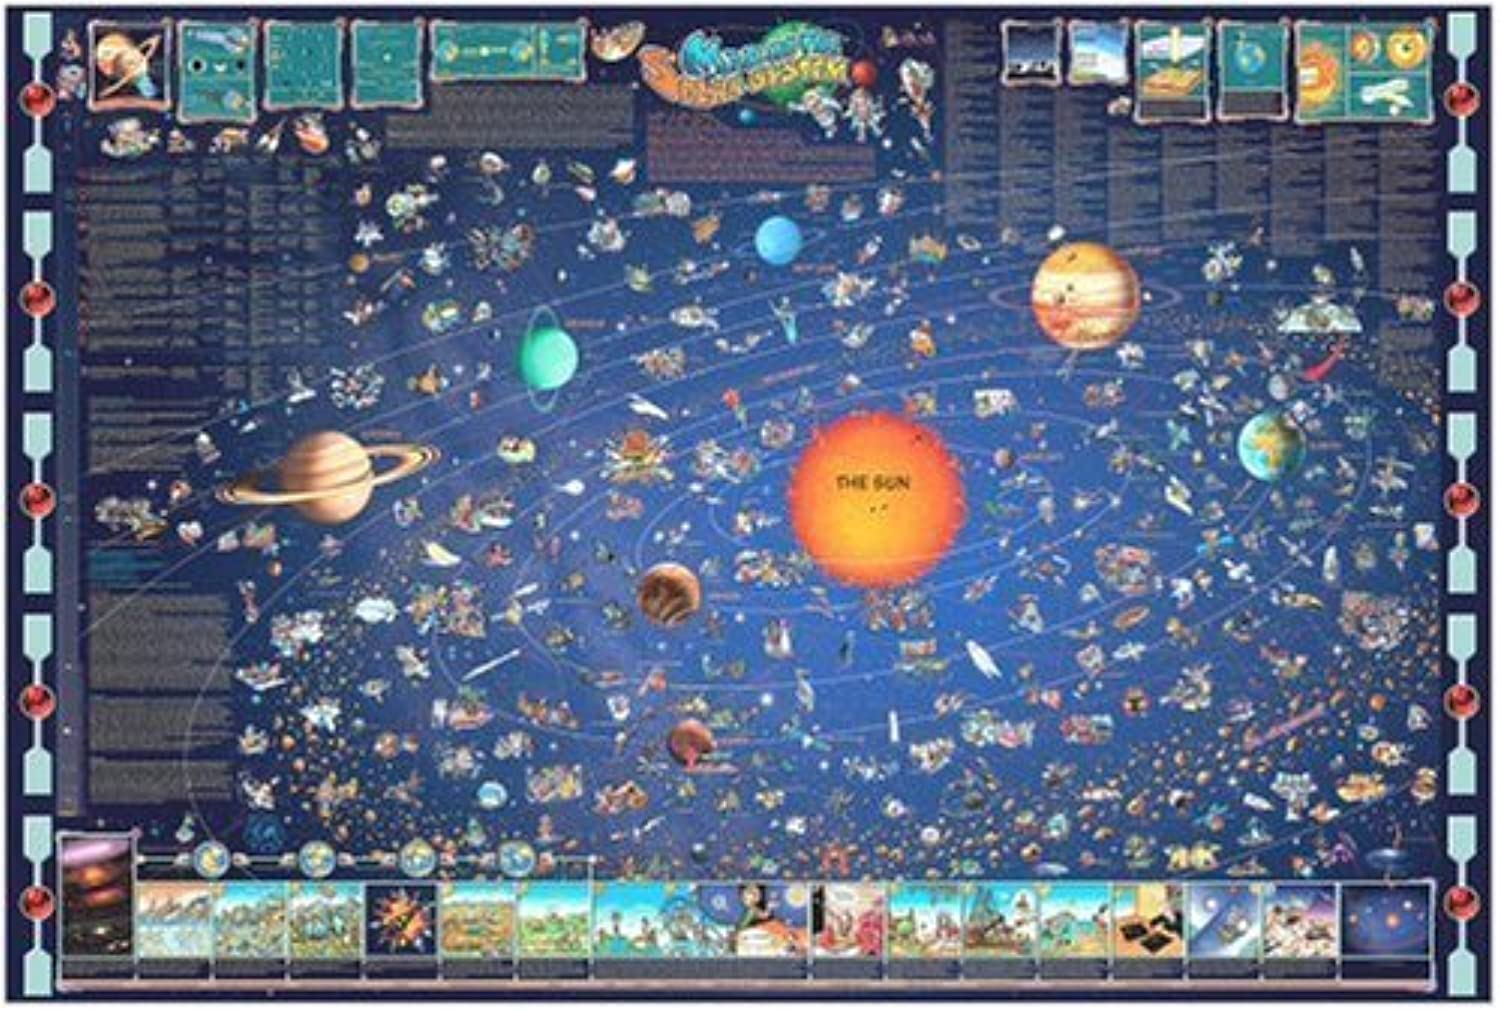 Obtén lo ultimo Great American Puzzle Factory Map Map Map Of The Solar System 600 Piece puzzle by Great American Puzzle Factory  mejor reputación